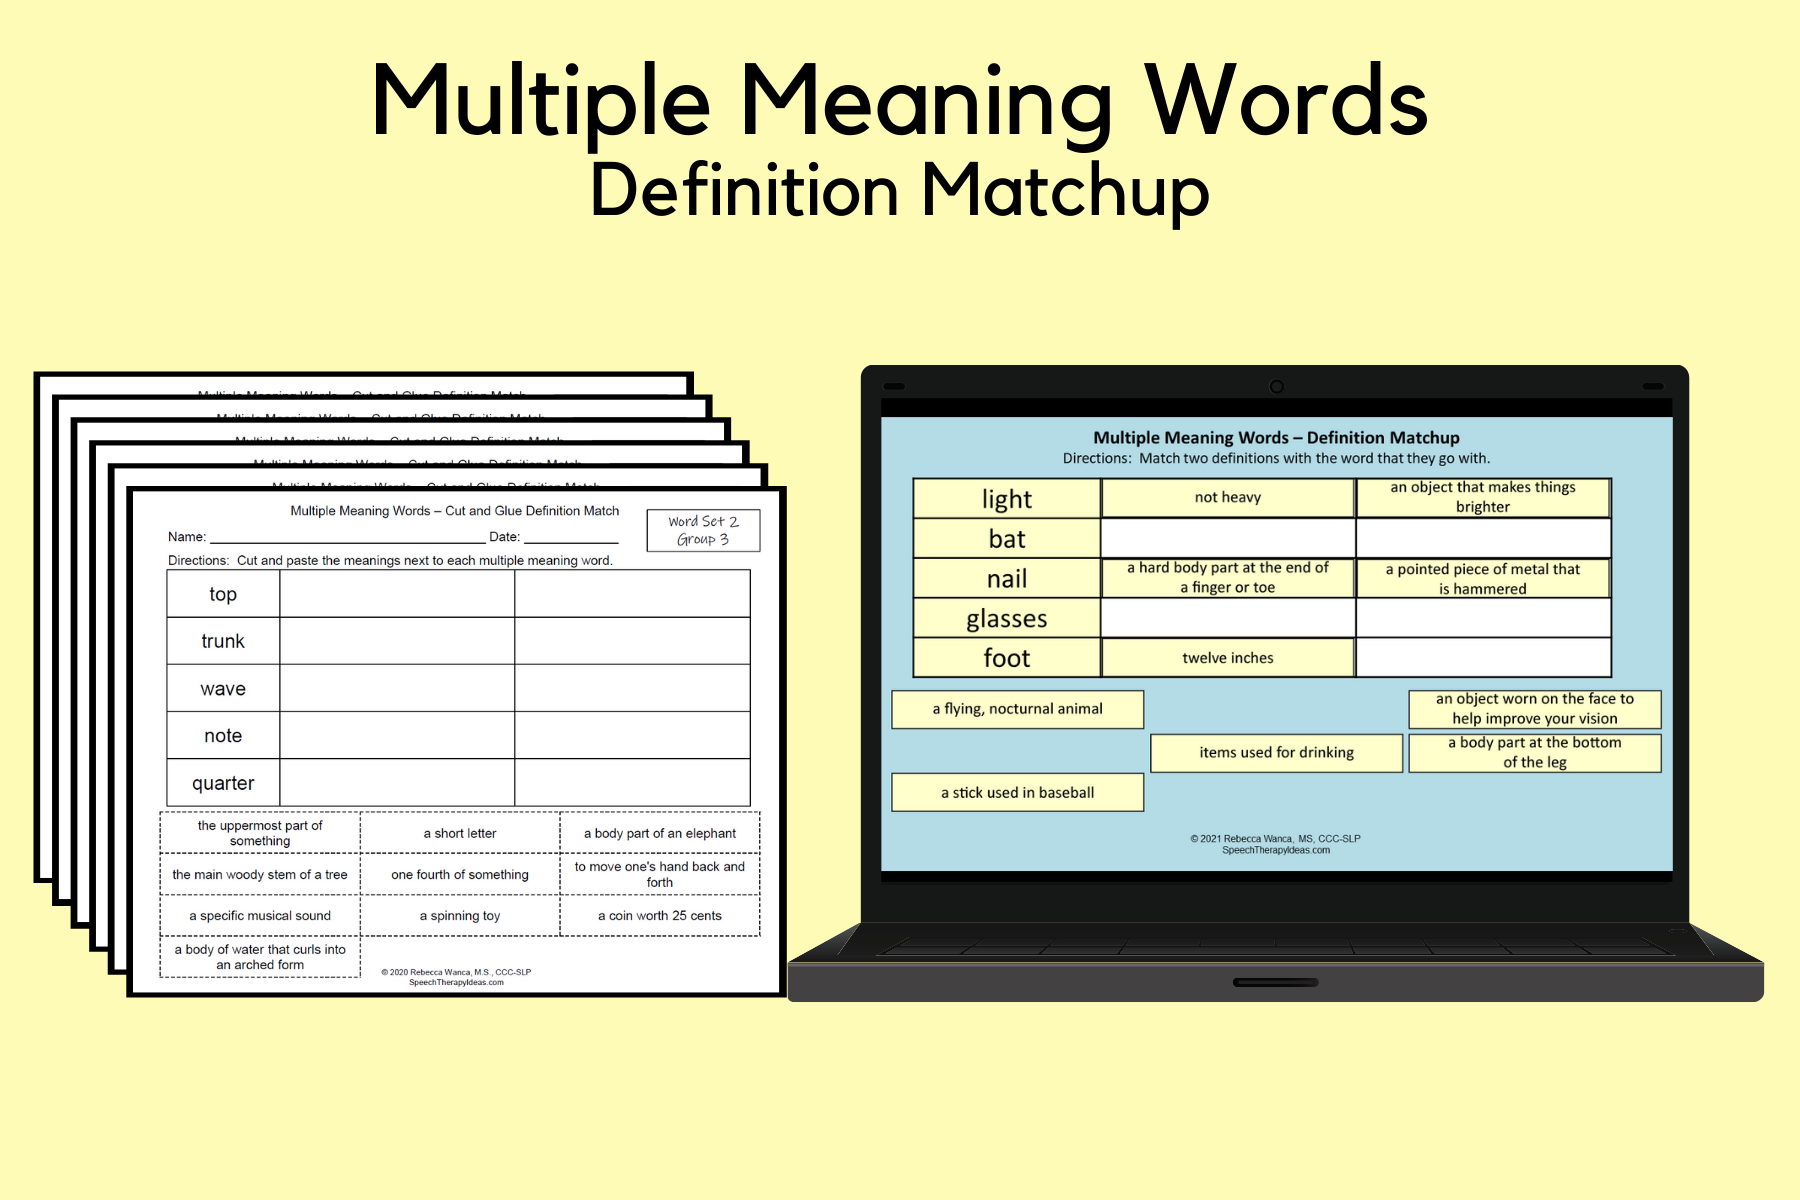 Multiple Meaning Words – Definition Matchup